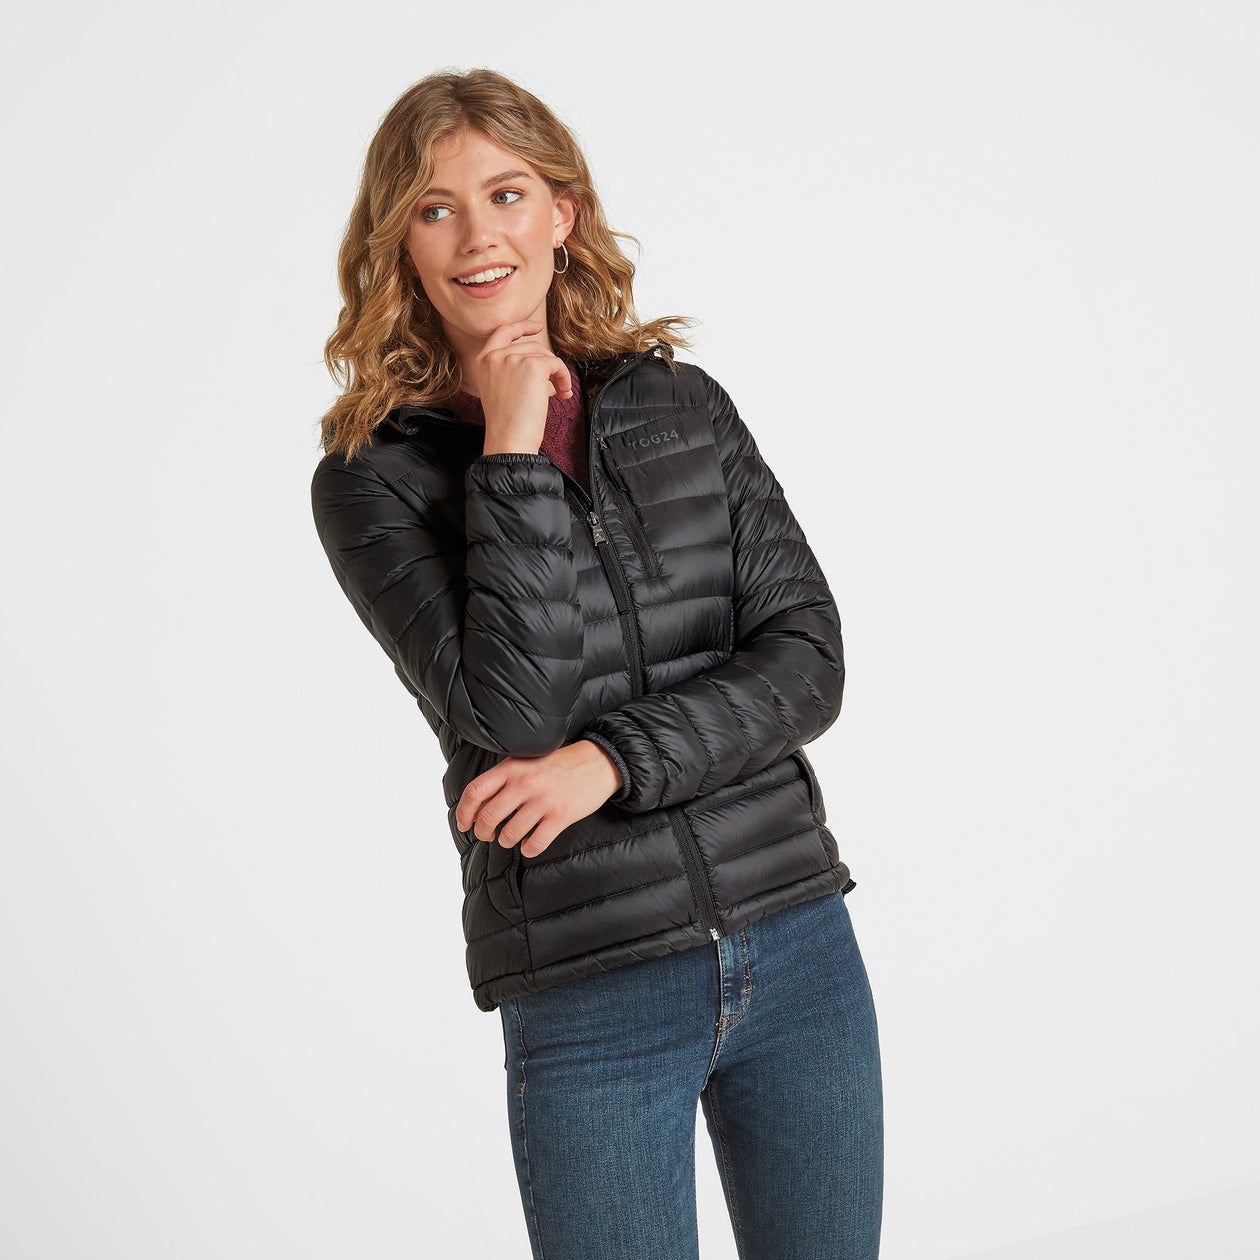 Drax Womens Hooded Down Jacket - Black image 4